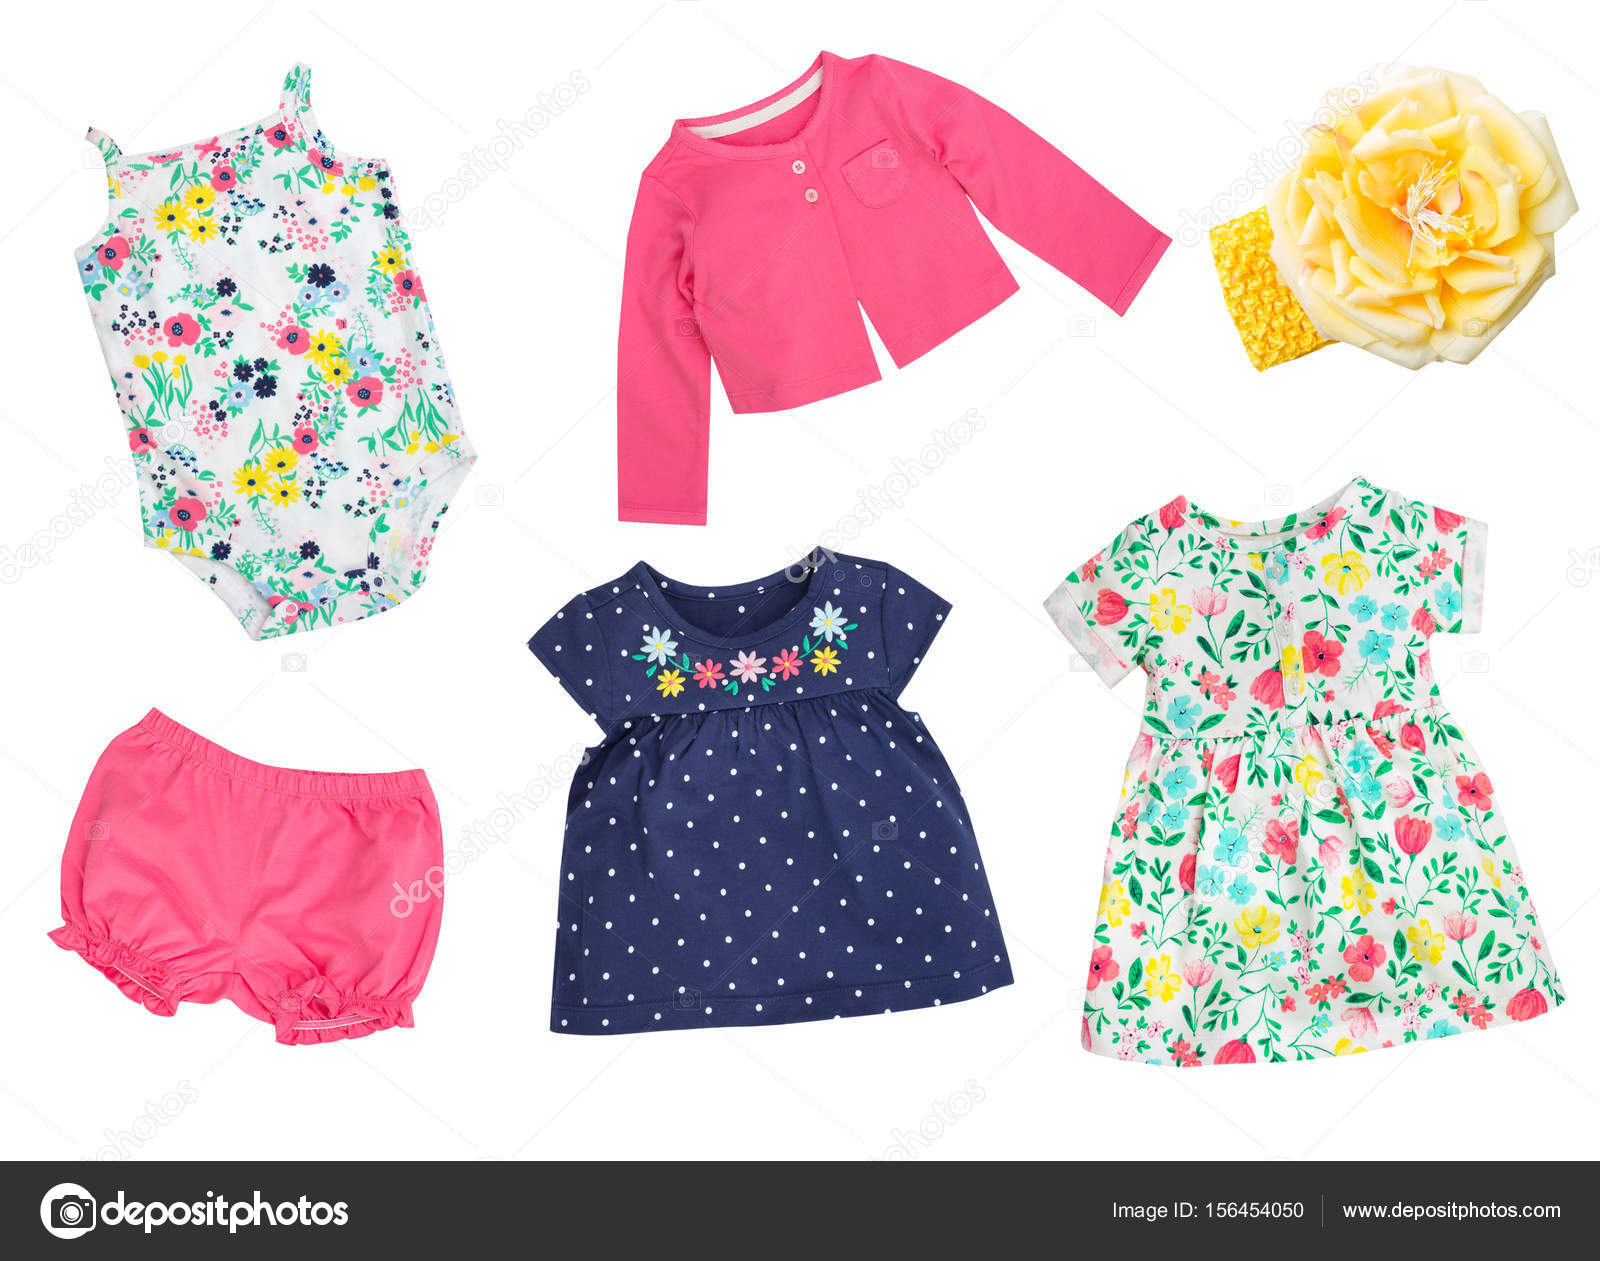 ade969aae2 Child's summer clothes collage isolated on white.Bright colorful kid girl  set of wear.